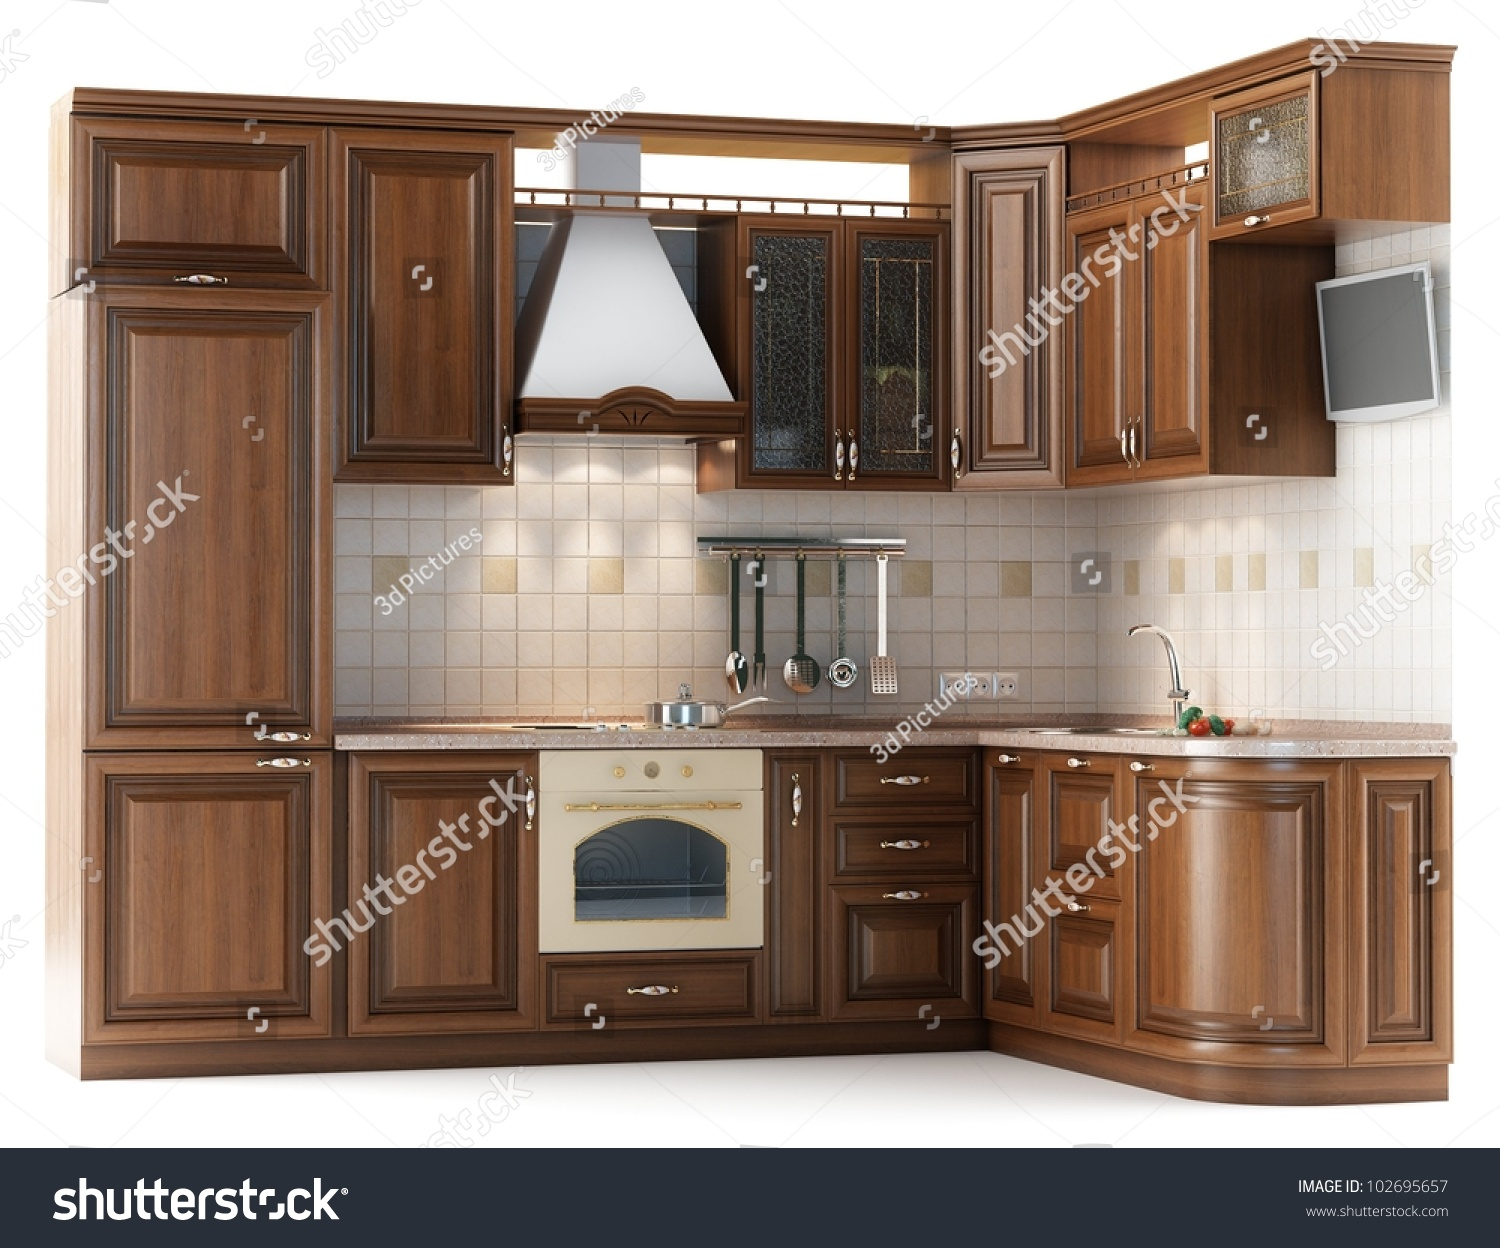 Furniture Kitchen Beautiful Kitchen Furniture Made Wood Studio Stock Illustration